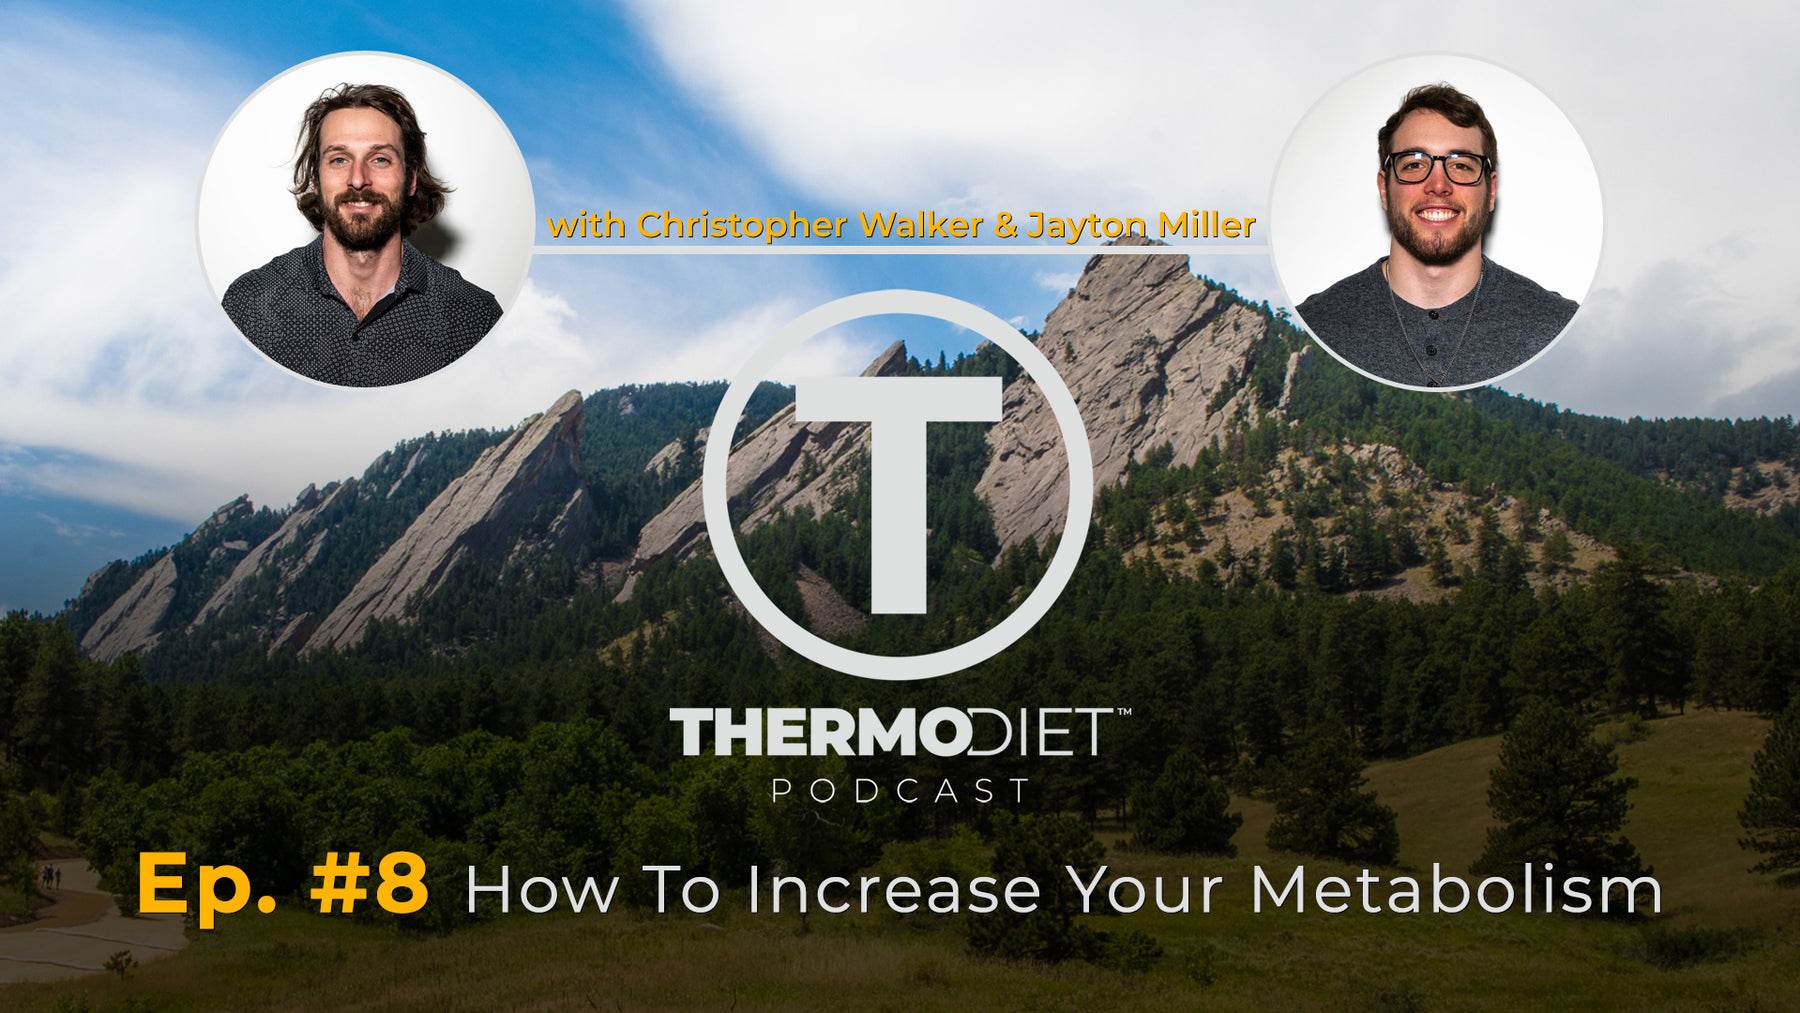 The Thermo Diet Podcast Episode 8 - How To Increase Your Metabolism